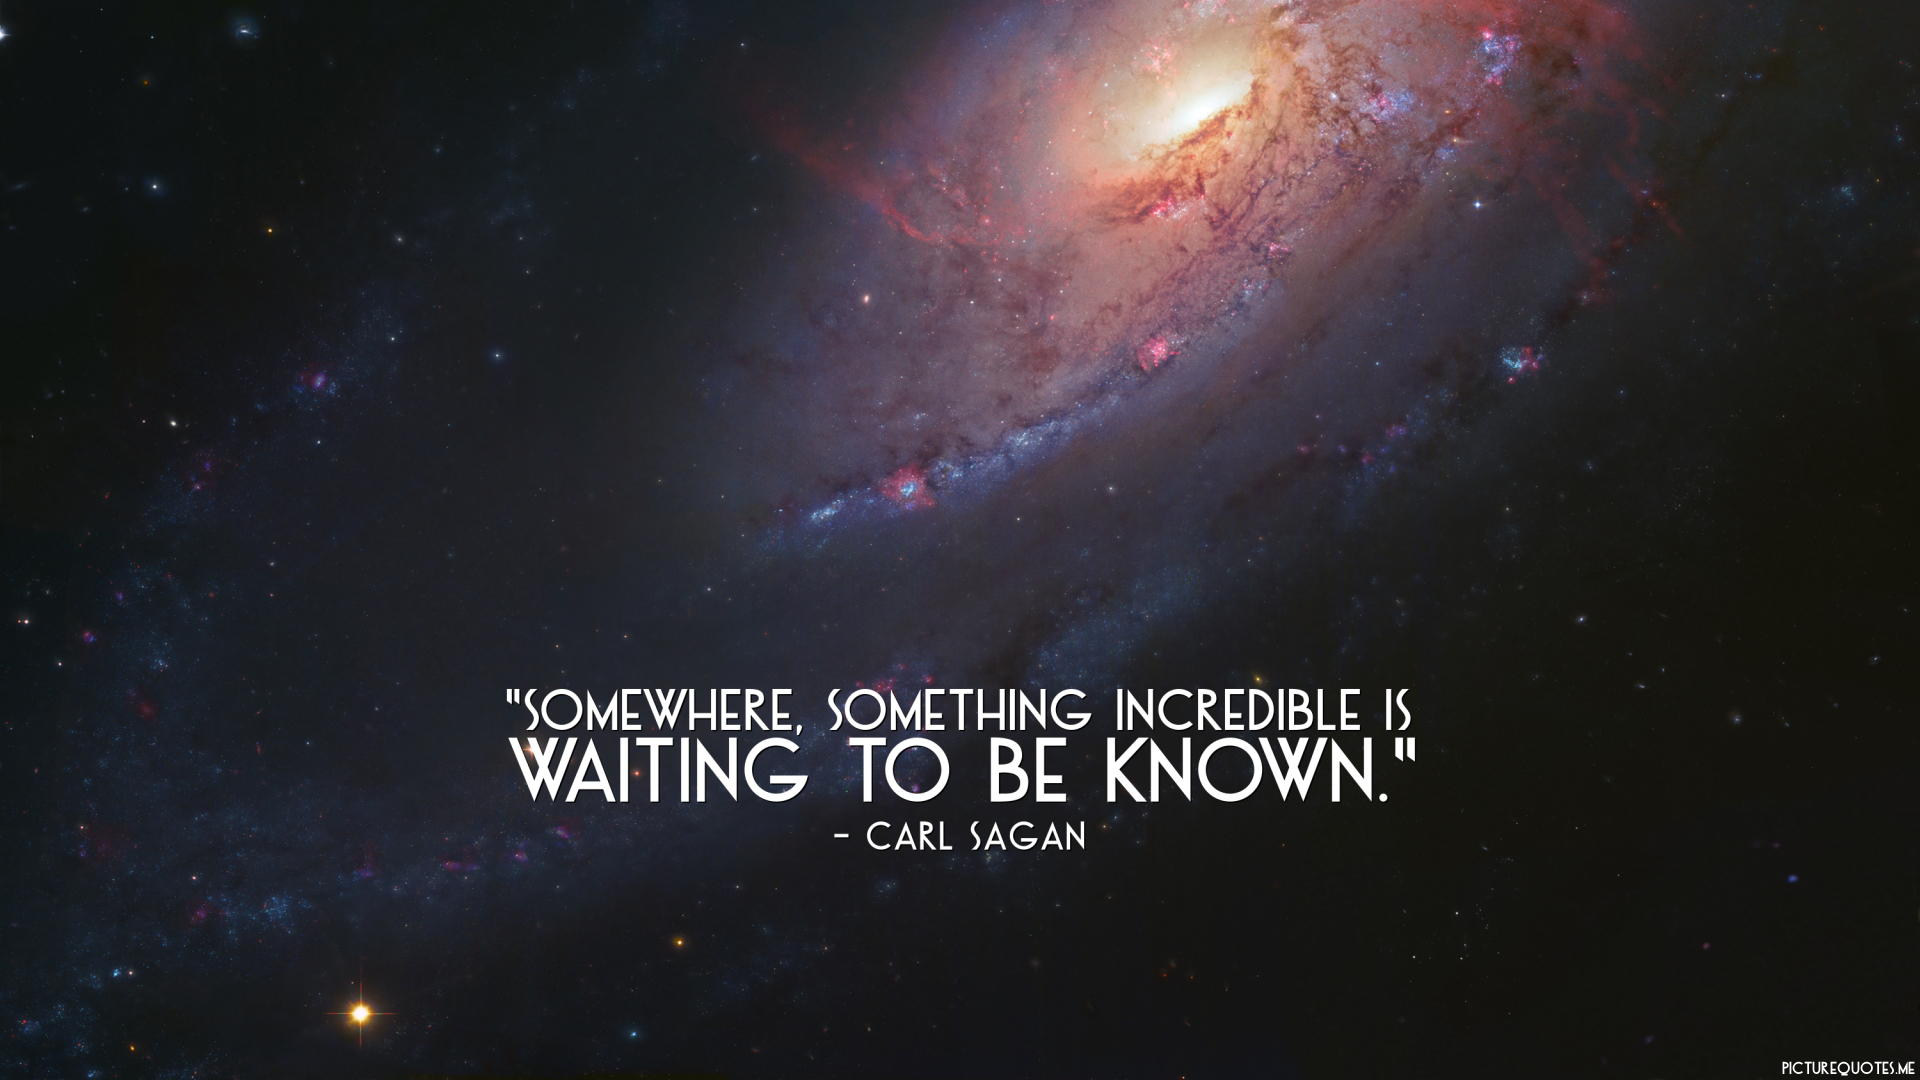 Vincent Van Gogh Quotes Wallpaper Somewhere Something Incredible Is Waiting To Be Known